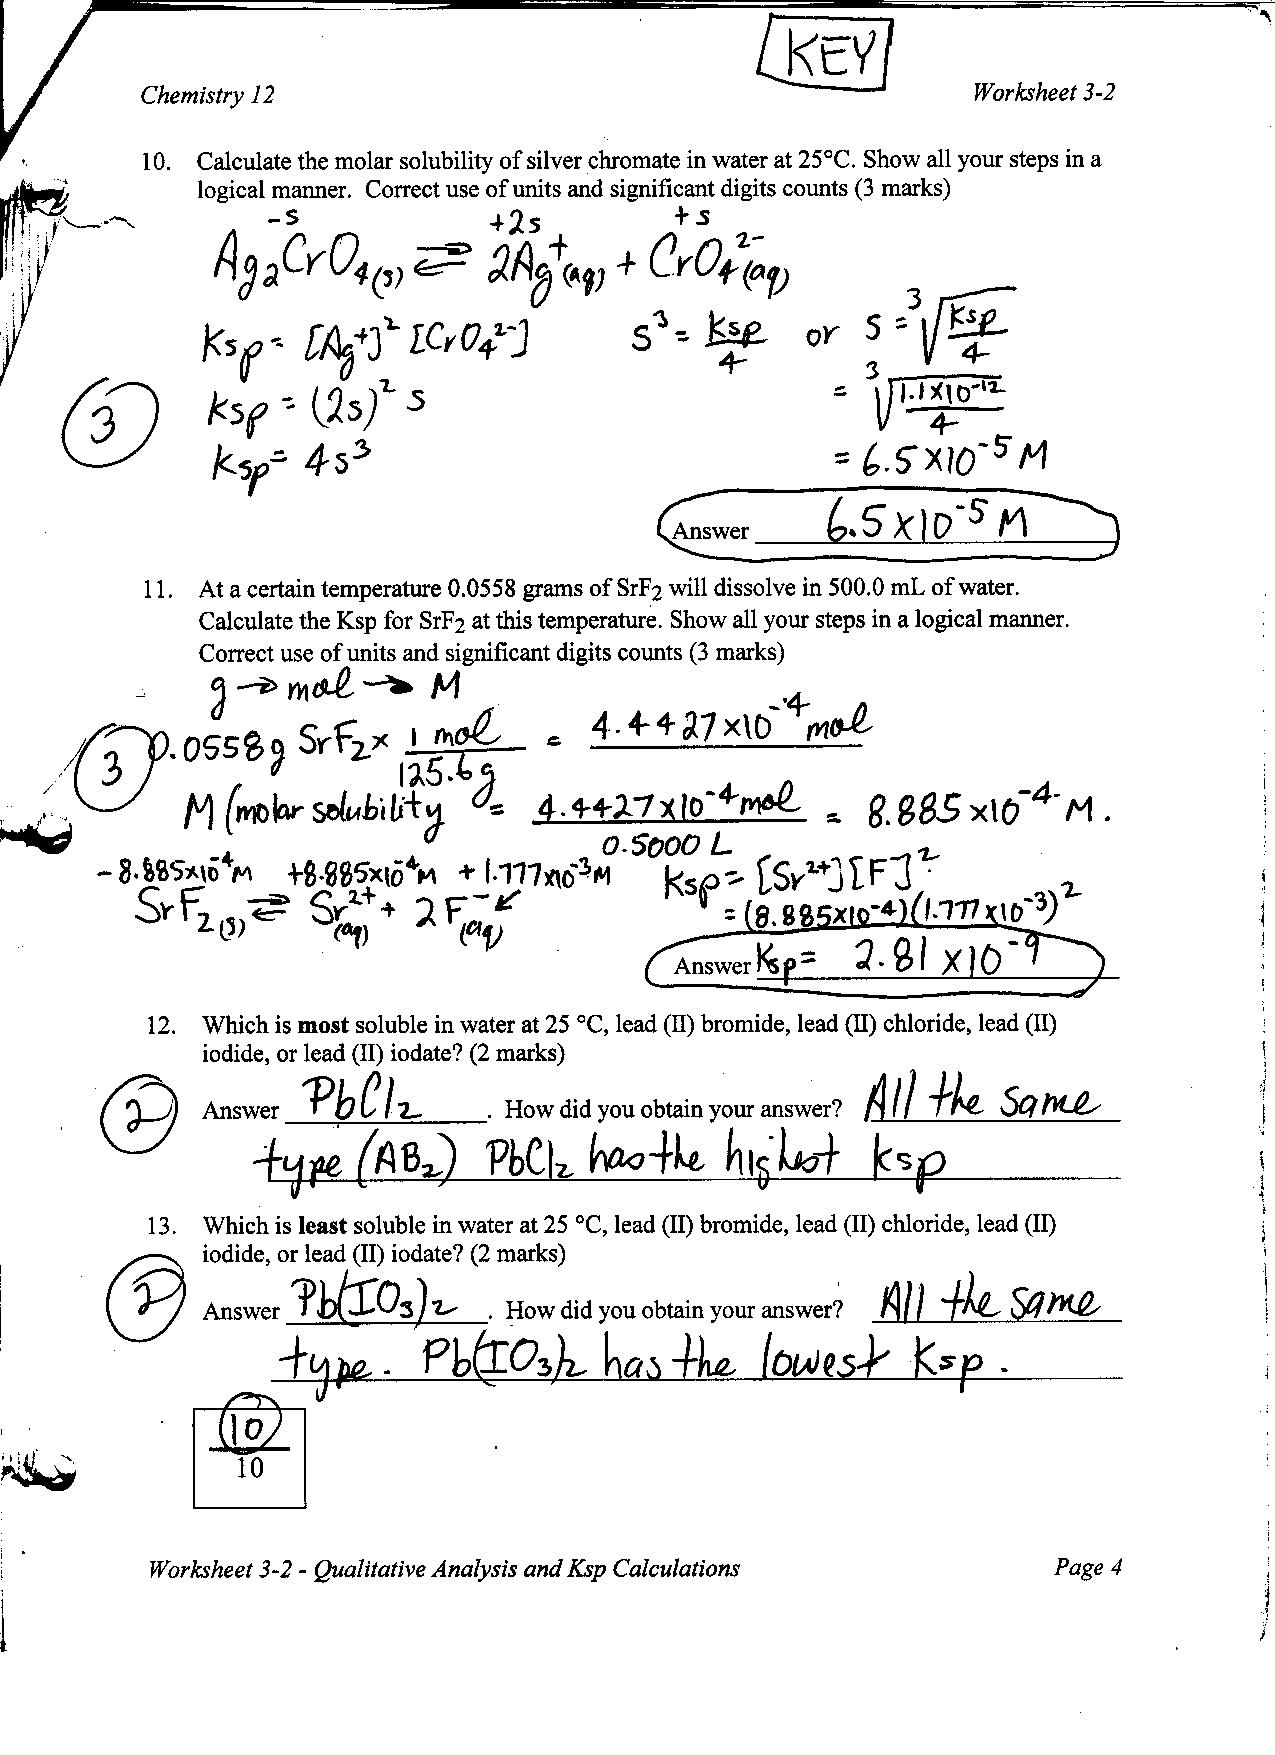 a lab experiment to calculate the solubility product constant of an ionic salt from titrations Physical chemistry laboratory  see `references to experiments' for text   measurement of solubility of a sparingly soluble salt, such  determination of the  thermodynamic solubility product  constant, ks, and mean ionic activity  coefficient, γ±, of ca(io3)2  theoretical values calculated from the theoretical  expressions.